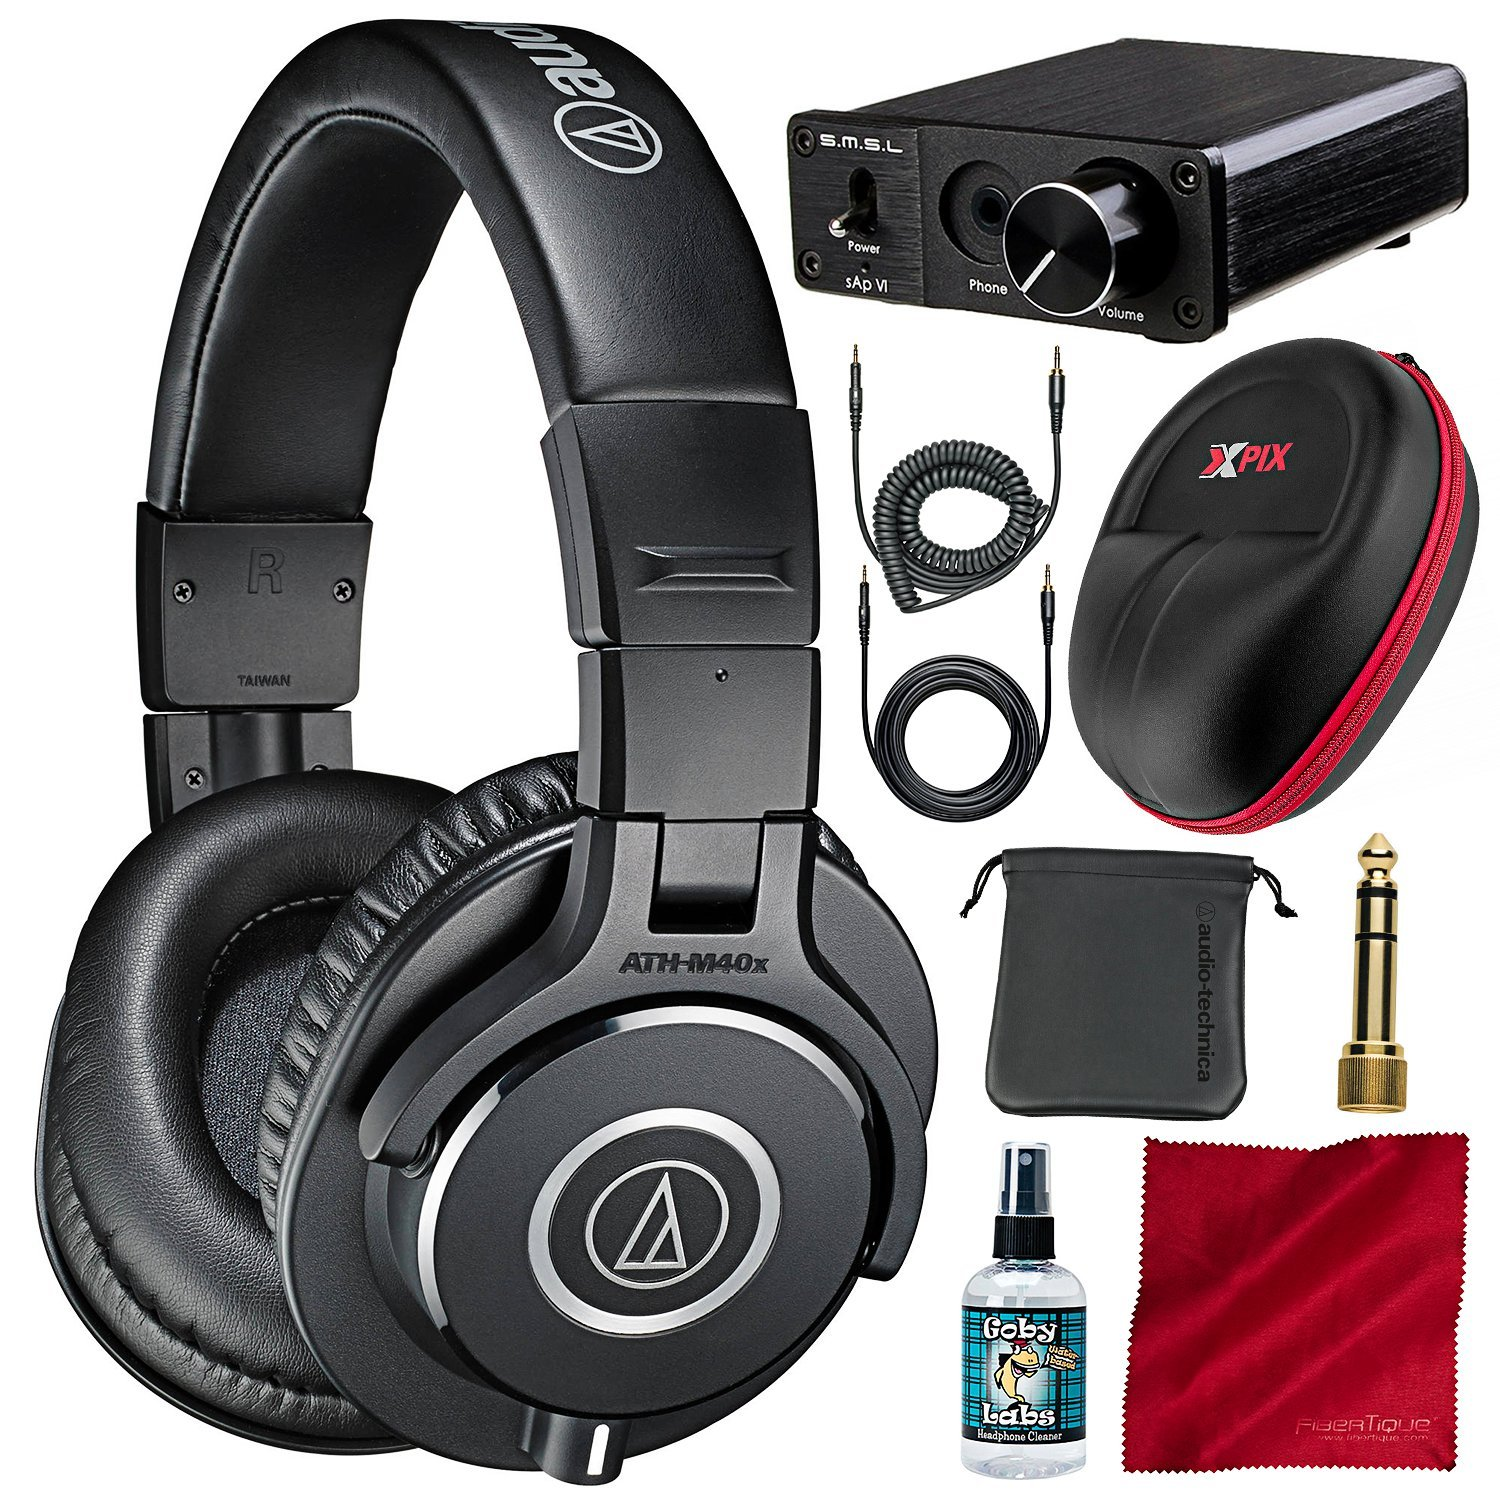 Audio-Technica ATH-M40x Monitor Headphones and Deluxe Accessory Bundle with Big Power Amplifier + Protective Case + More Photo Savings 4334427883